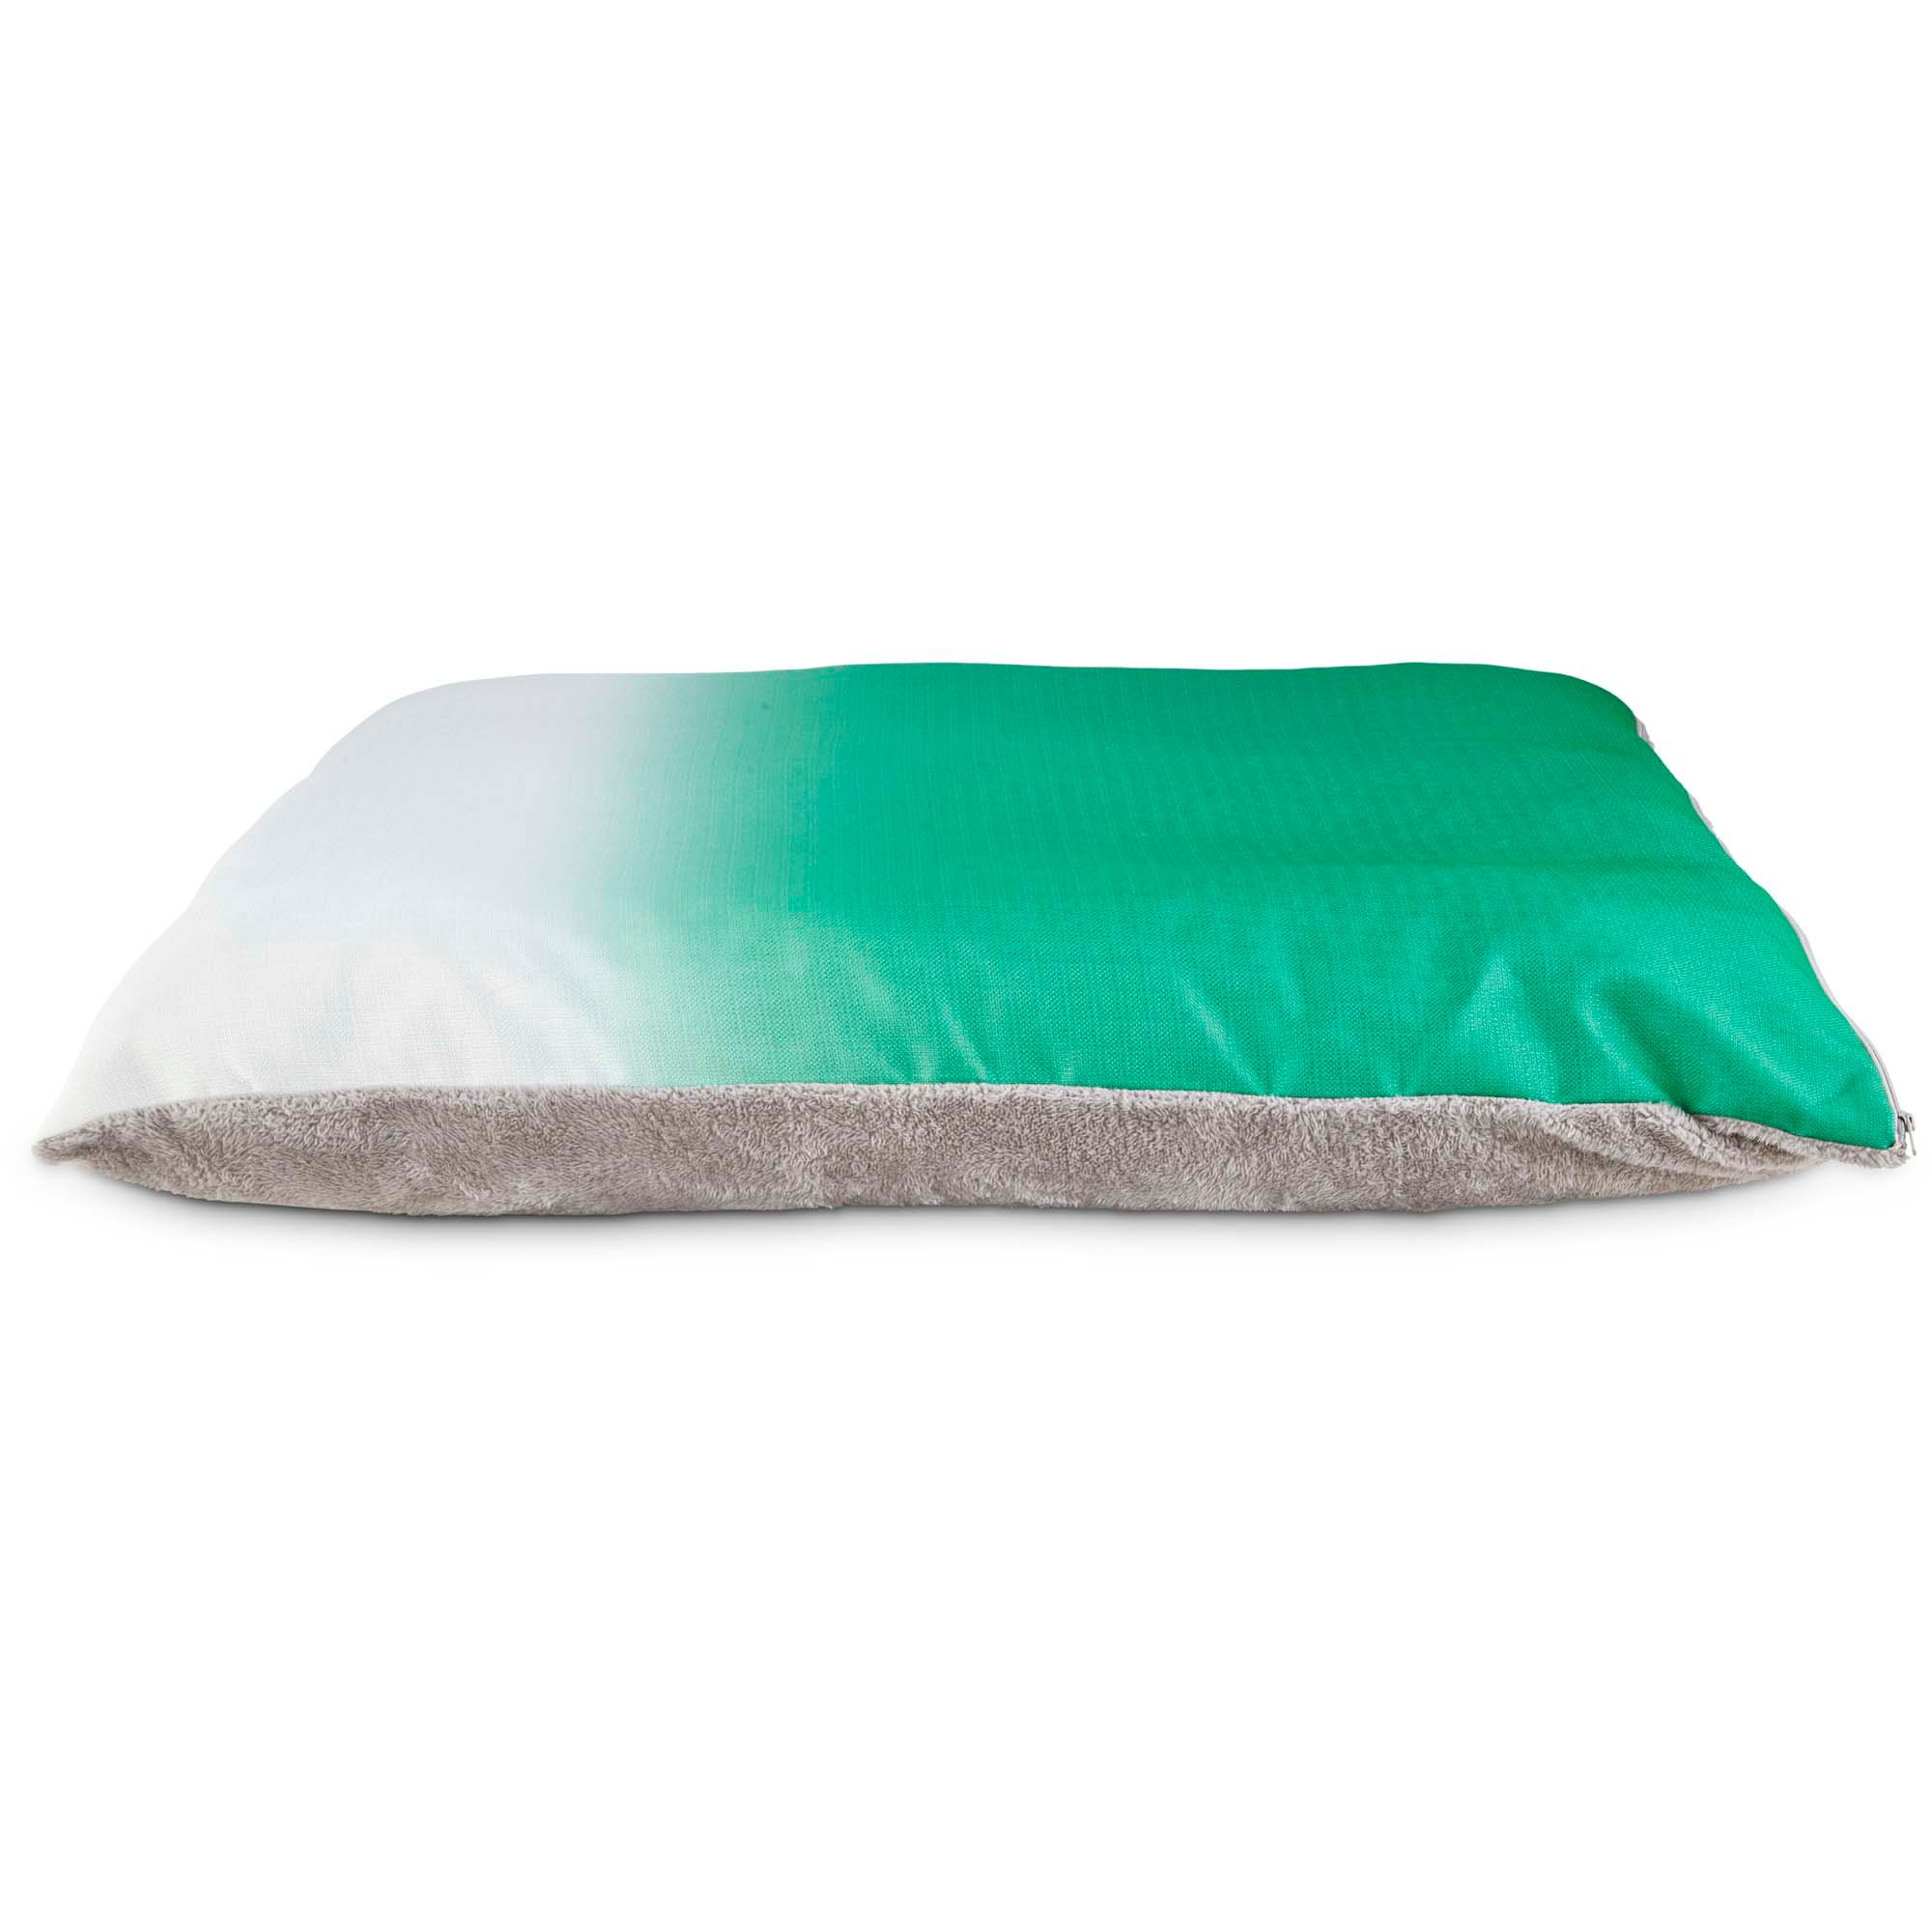 you & me pillow dog bed in green ombre | petco